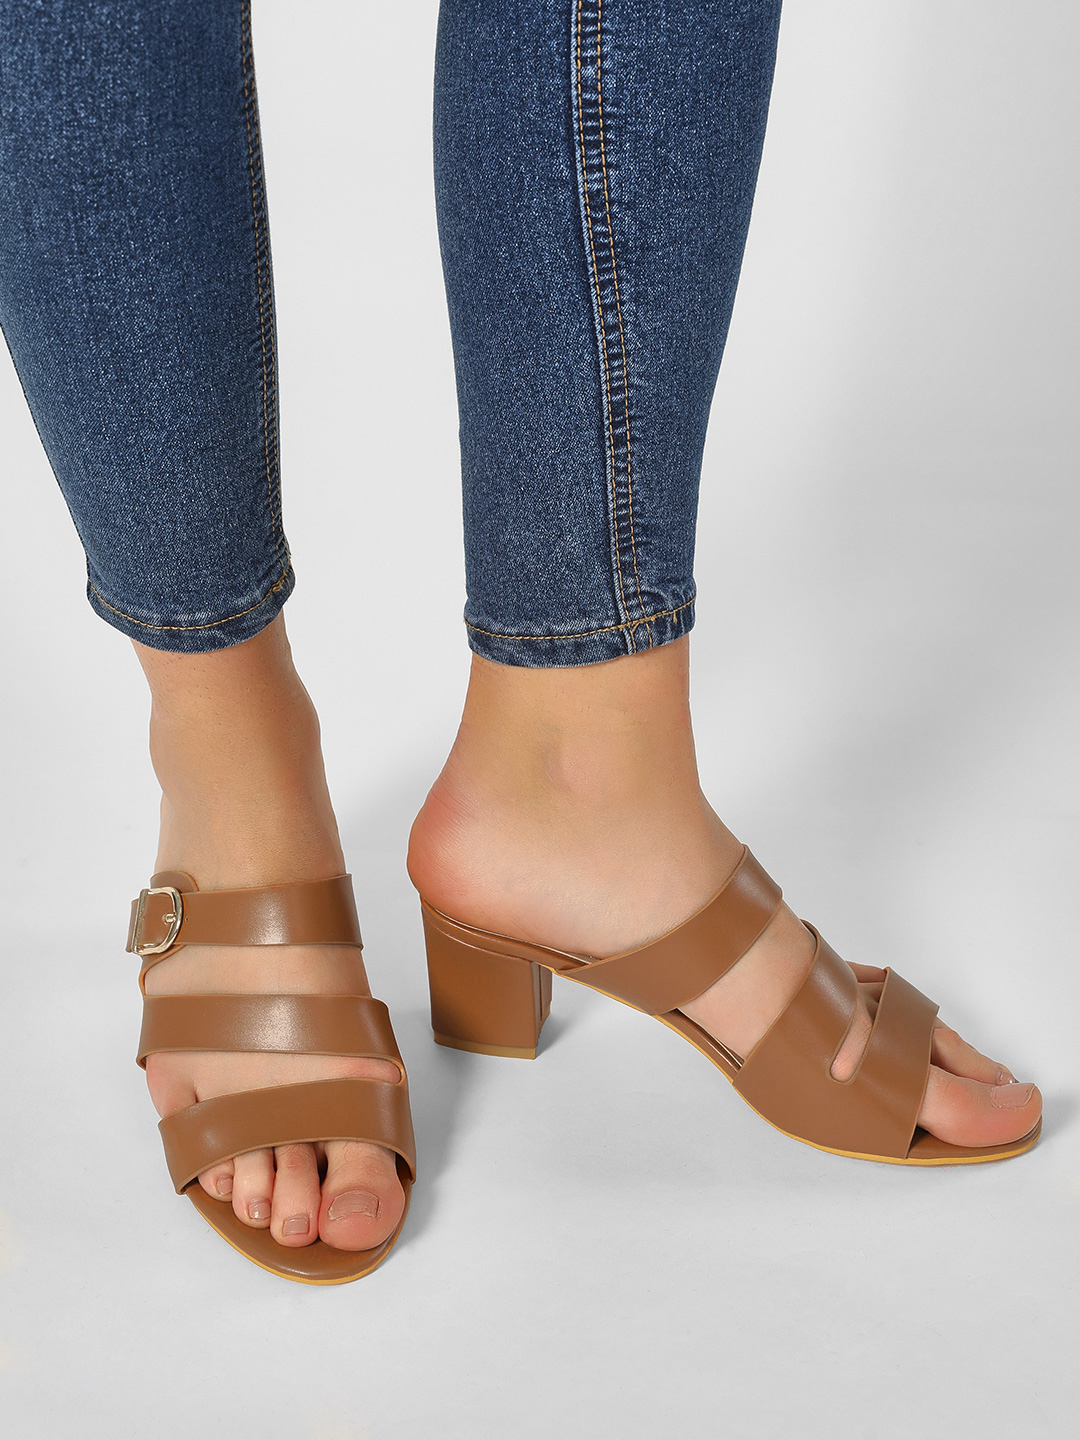 My Foot Couture Tan Multi-Strap Block Heeled Sandals 1